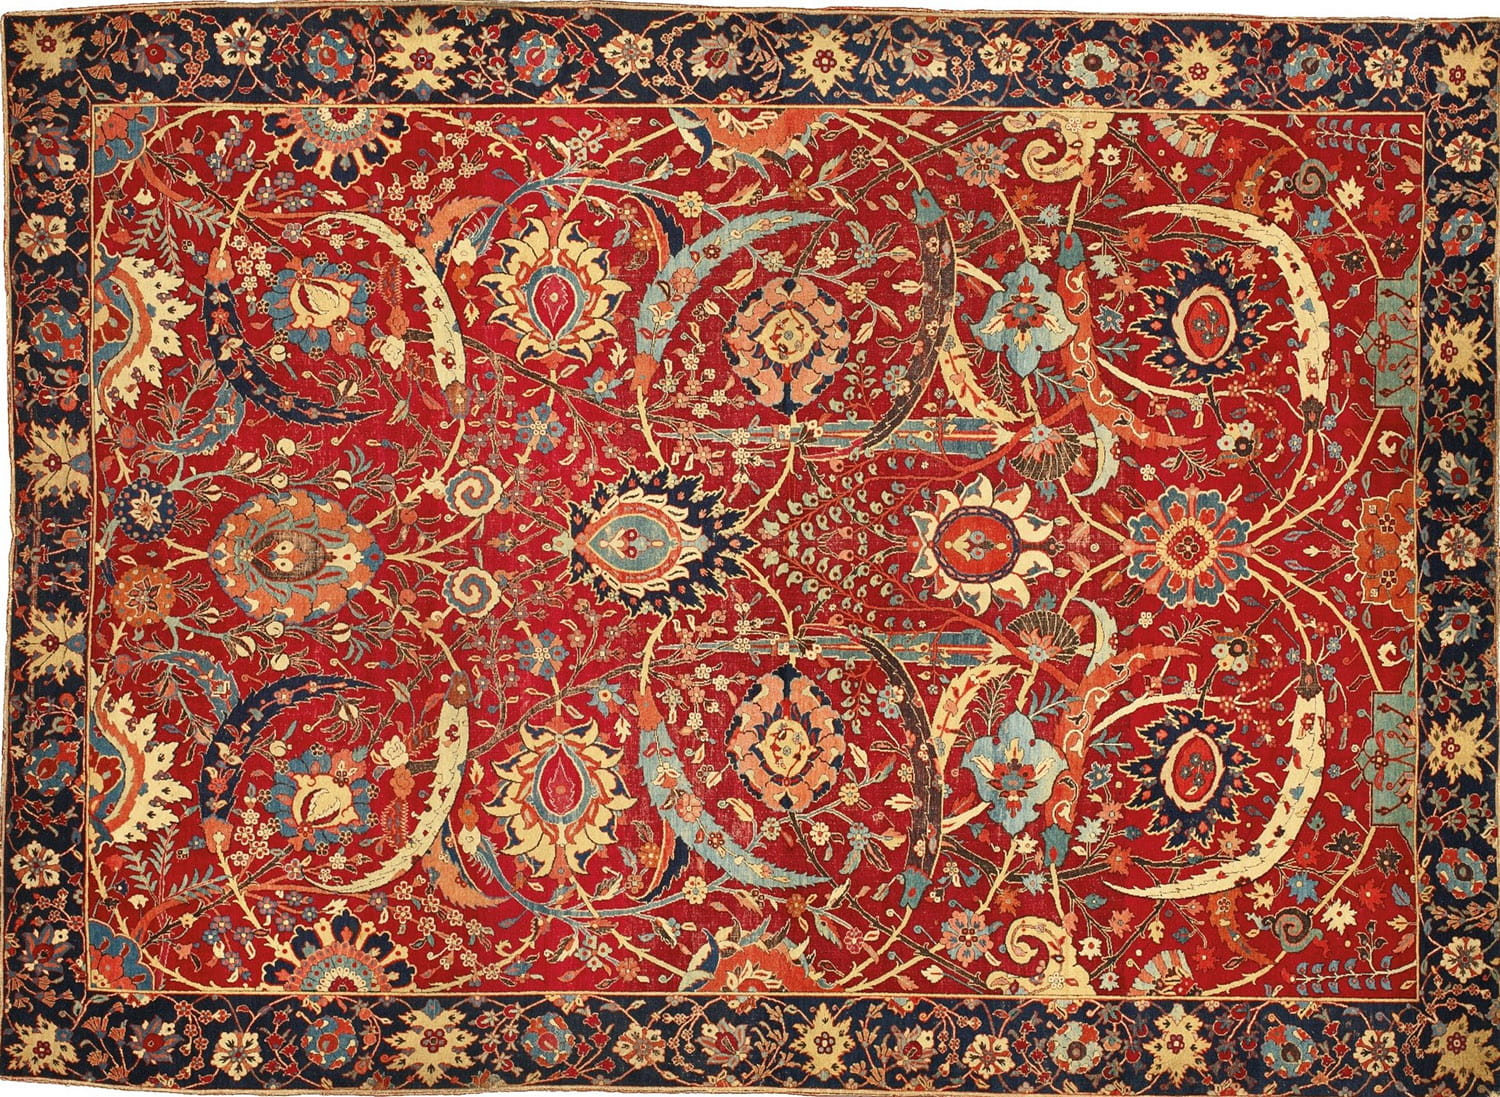 Six Most Expensive Rugs Ever Sold